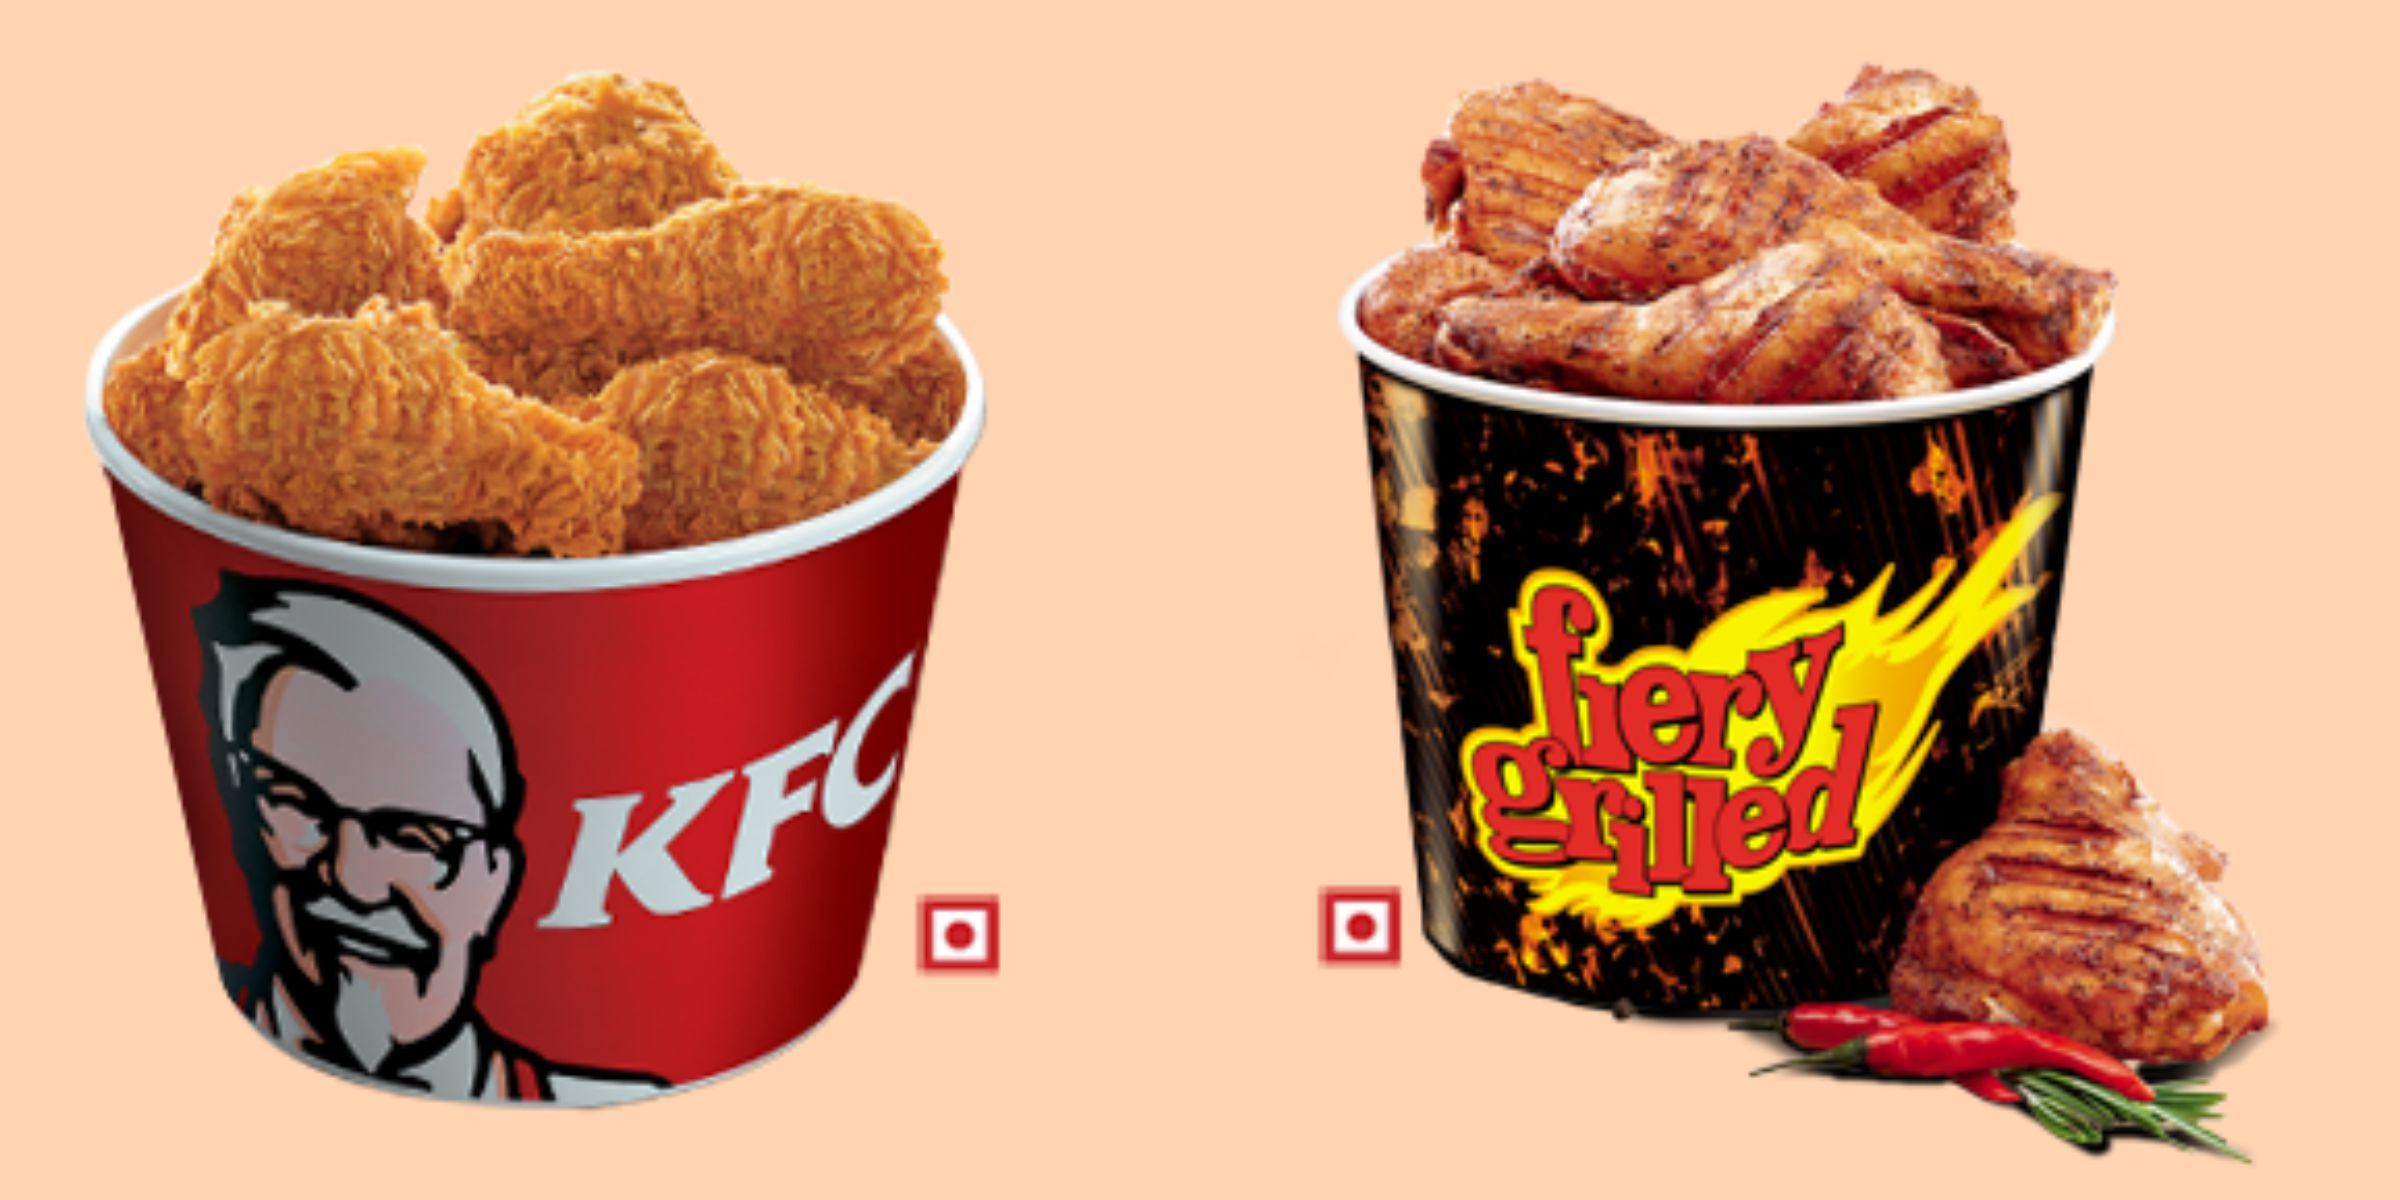 Grab The Complete List Of Kfc India Menu 2015 Sagmart